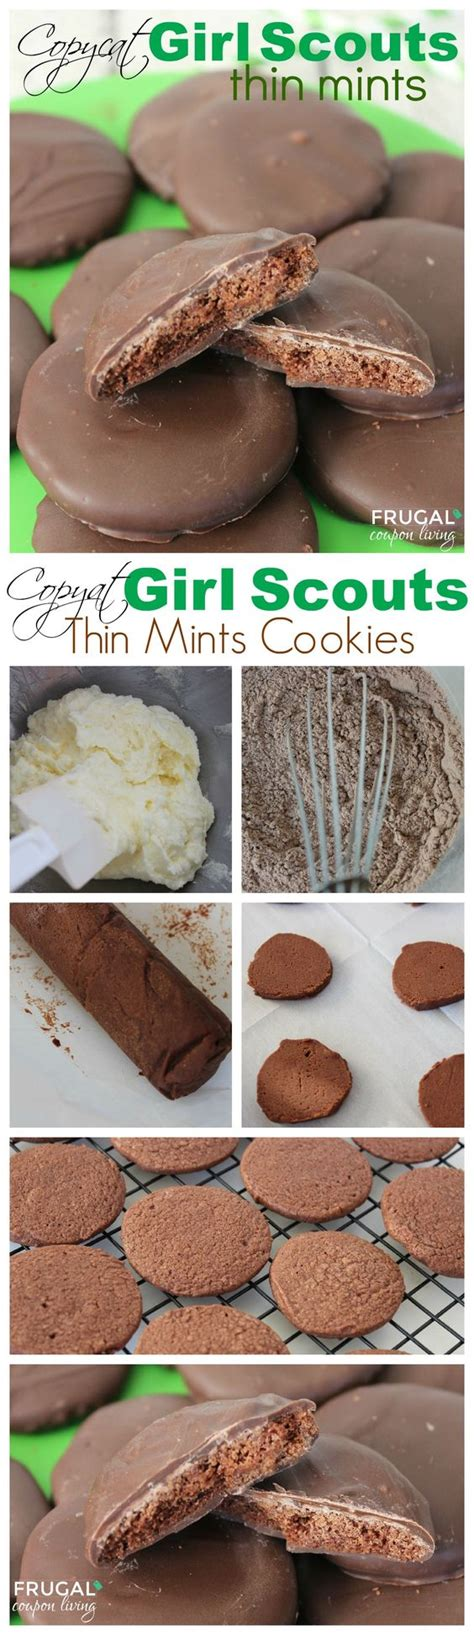 bulgur yemek and thin mints on pinterest cookies tutorials and girl scouts on pinterest